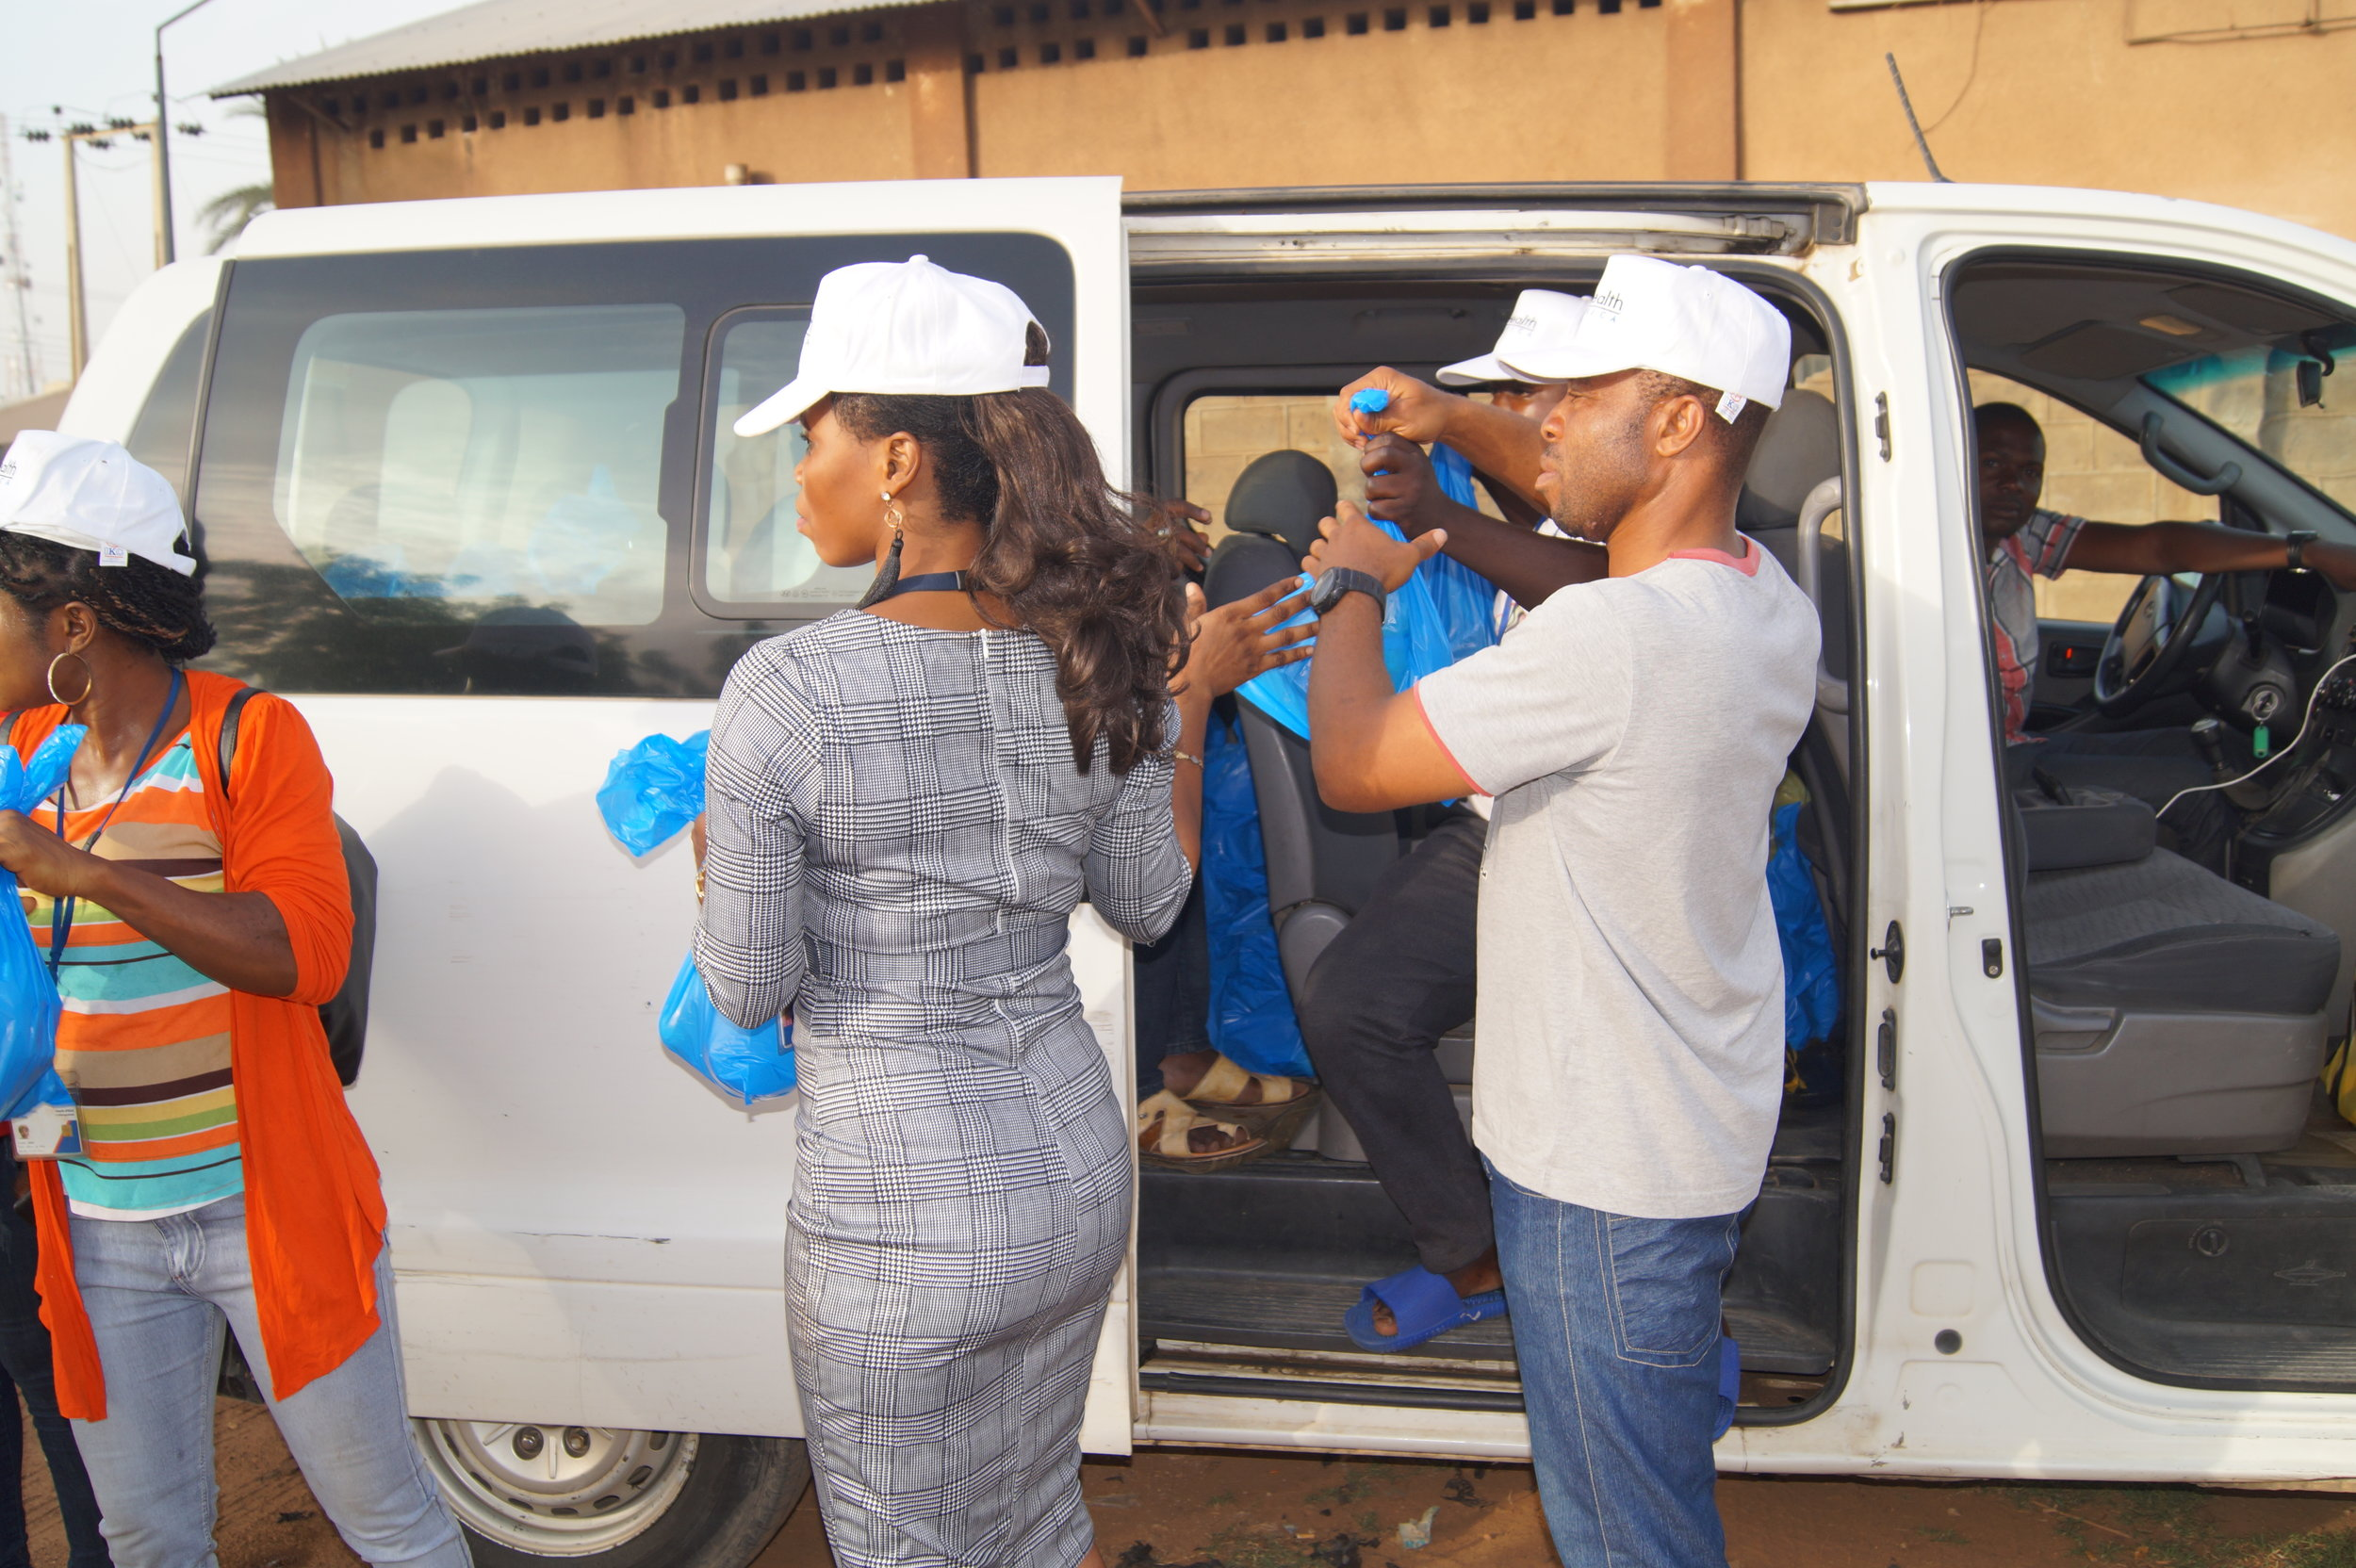 The distribution begins in Kano